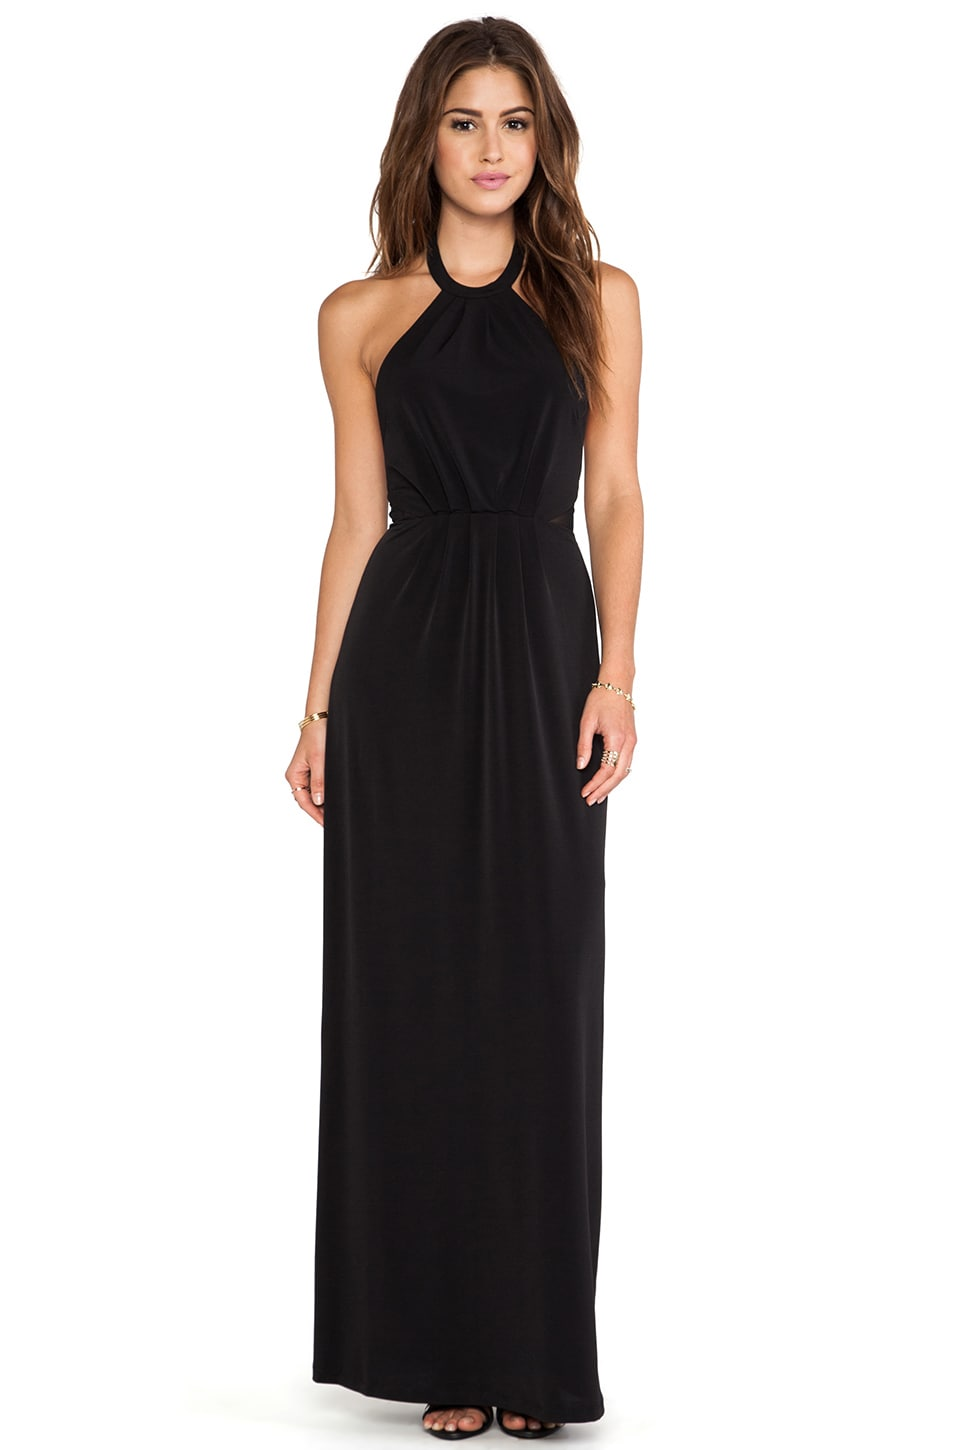 Bobi BLACK LABEL Maxi Halter Dress in Black